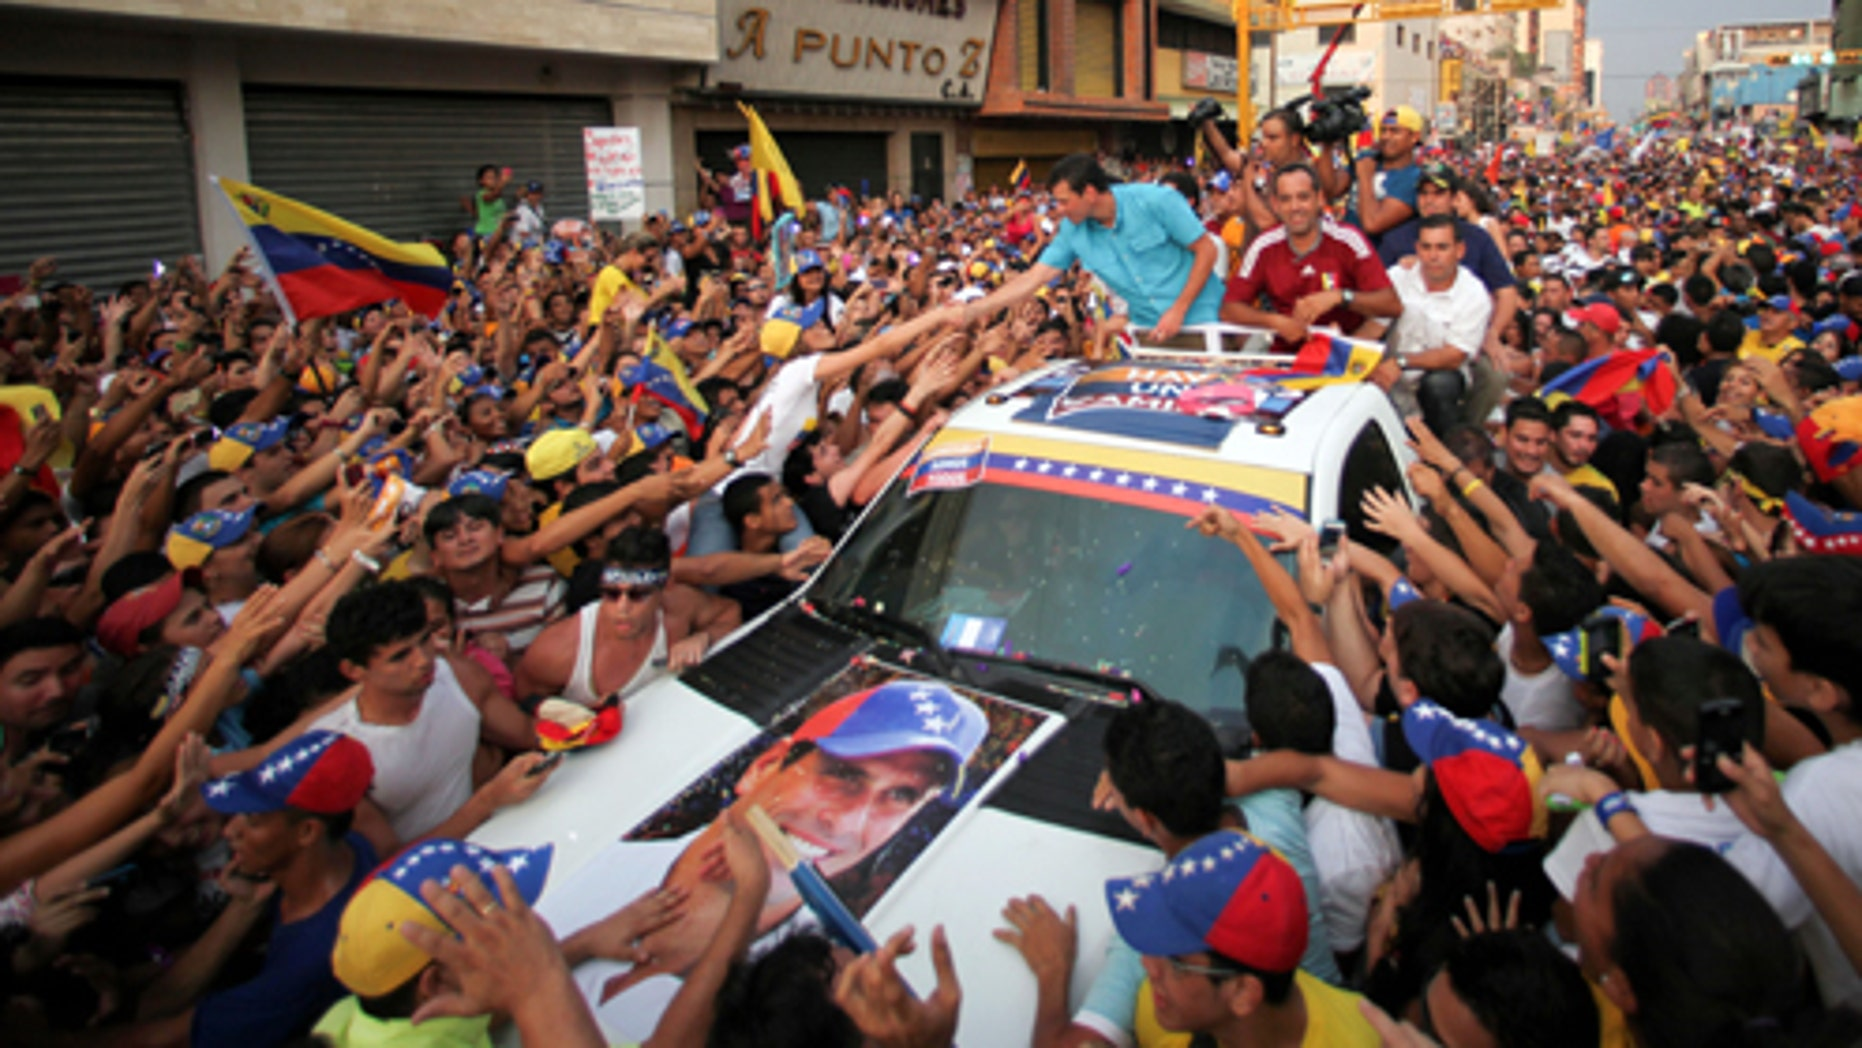 Opposition presidential candidate Henrique Capriles, center left, shakes hands with supporters while riding atop a vehicle during a campaign rally in Maracay, Venezuela, Thursday, April 4, 2013. Venezuela will hold a presidential election to replace late President Hugo Chavez on April 14. (AP Photo/Fernando Llano)